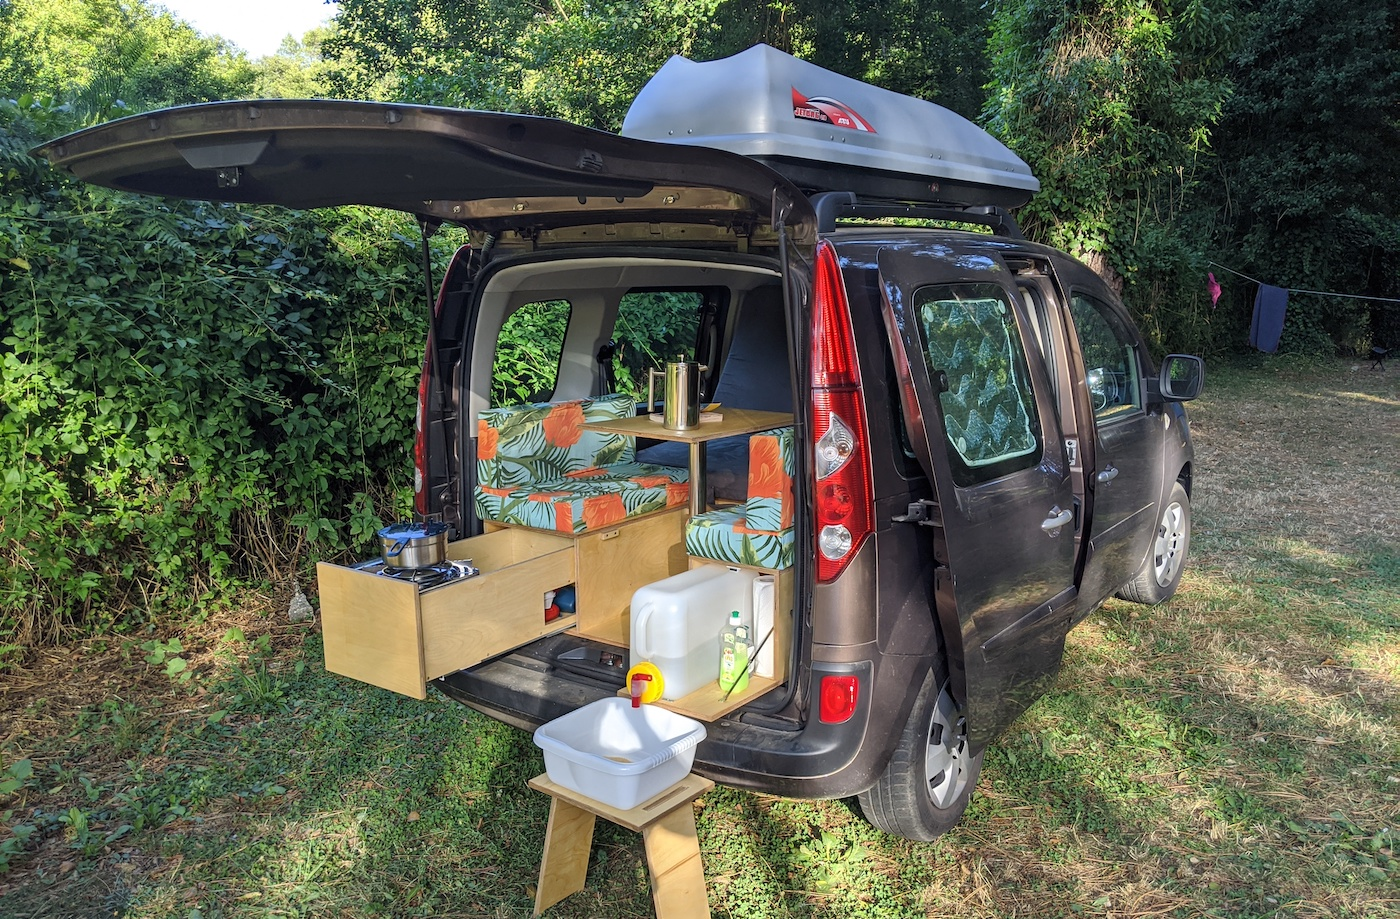 Our DIY camper van in a campsite in a beautiful nature setting